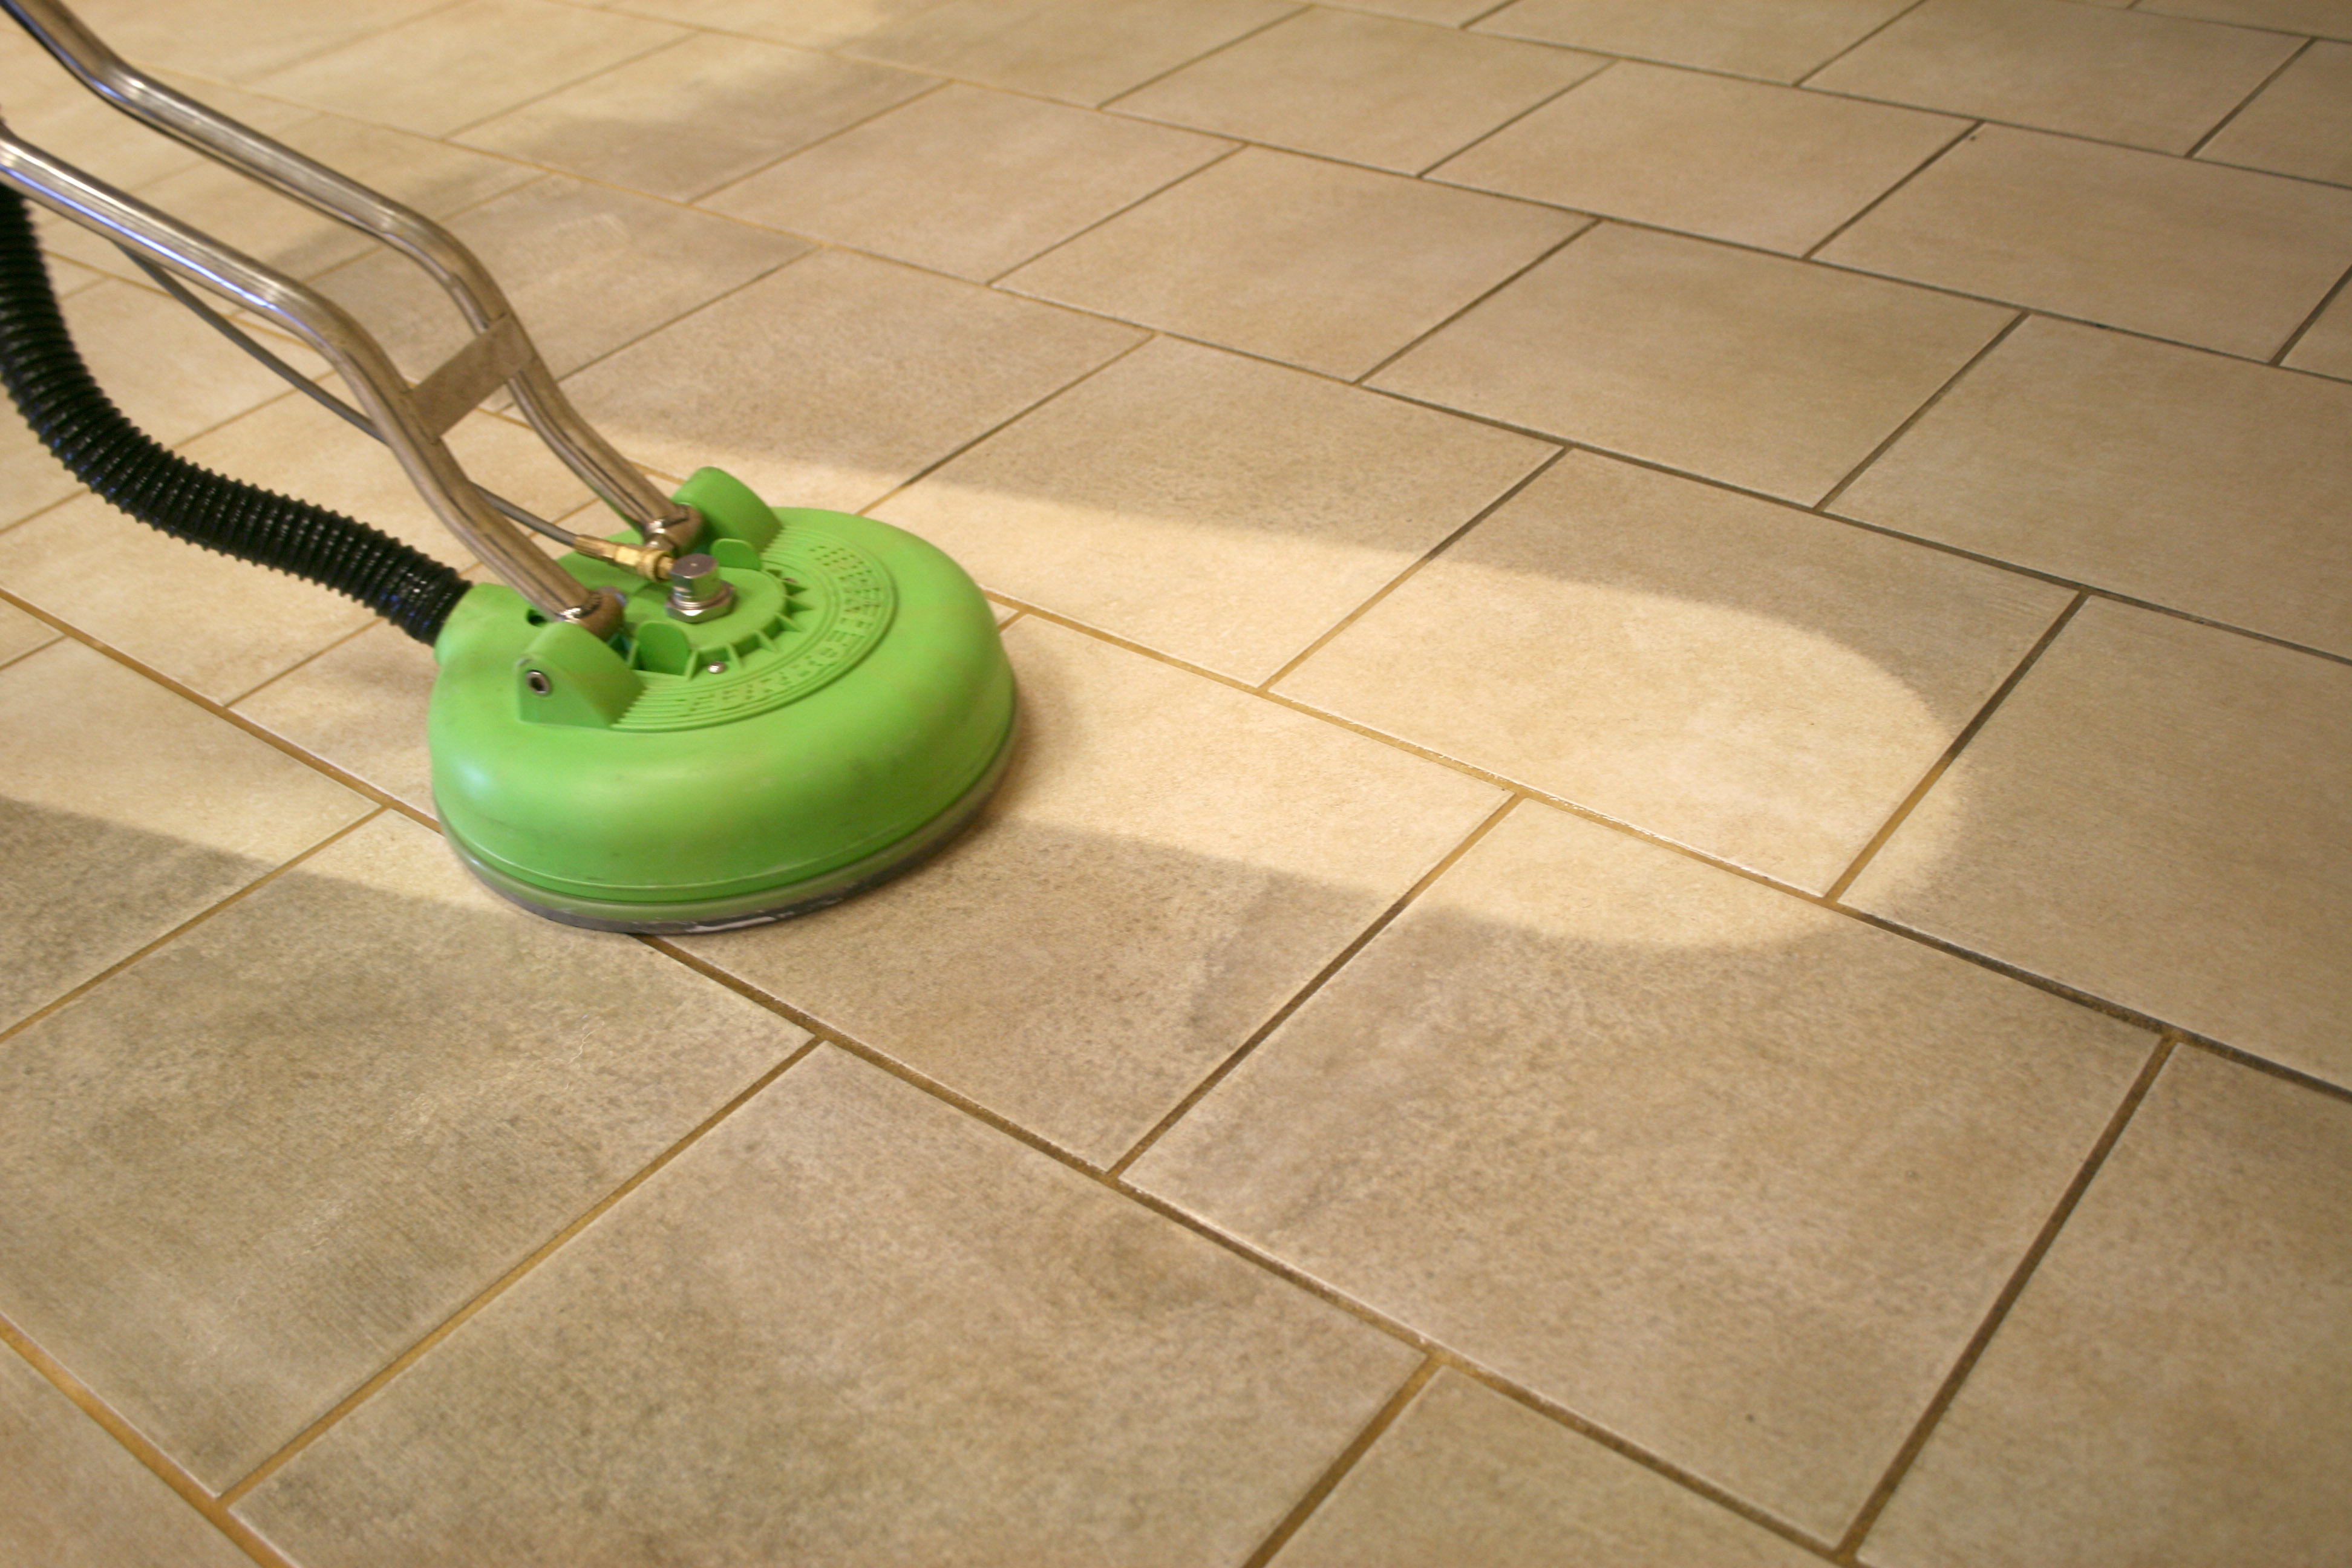 How To Clean Tile Grout HireRush Blog - How to clean bathroom floor tile grout